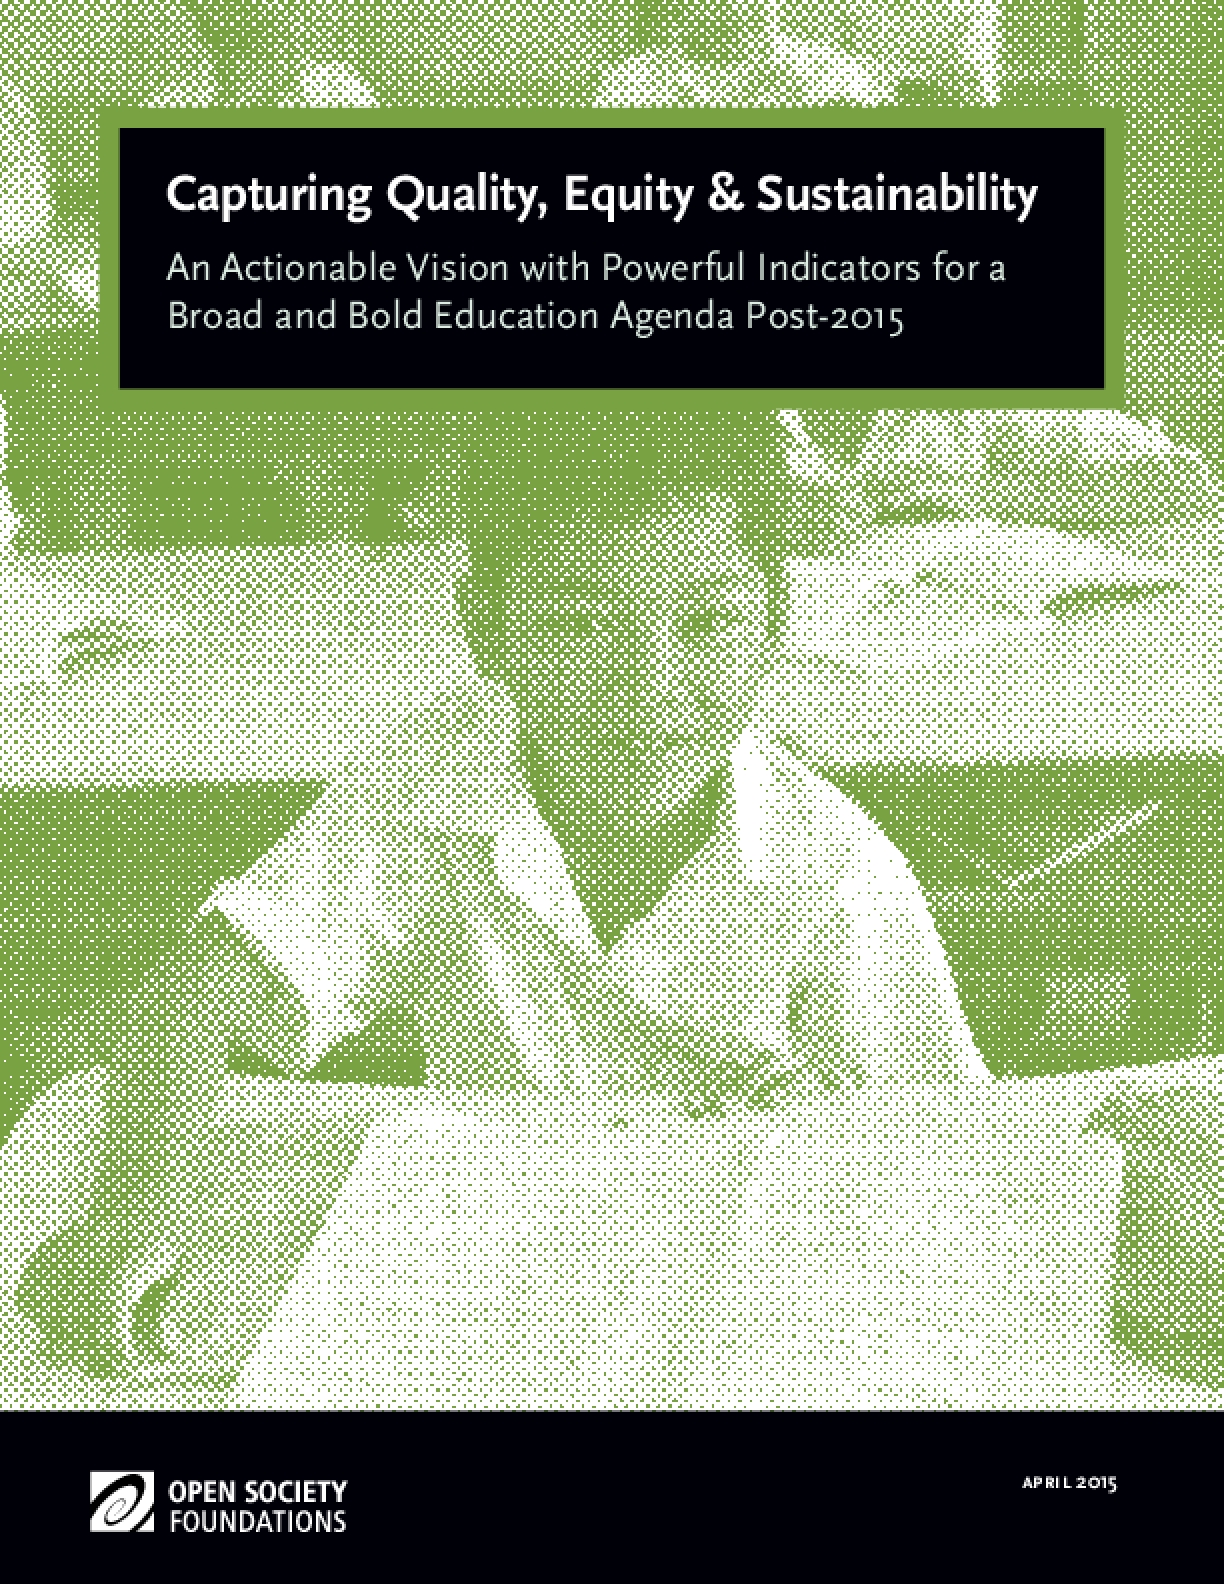 Capturing Quality, Equity & Sustainability: An Actionable Vision with Powerful Indicators for a Broad and Bold Education Agenda Post-2015